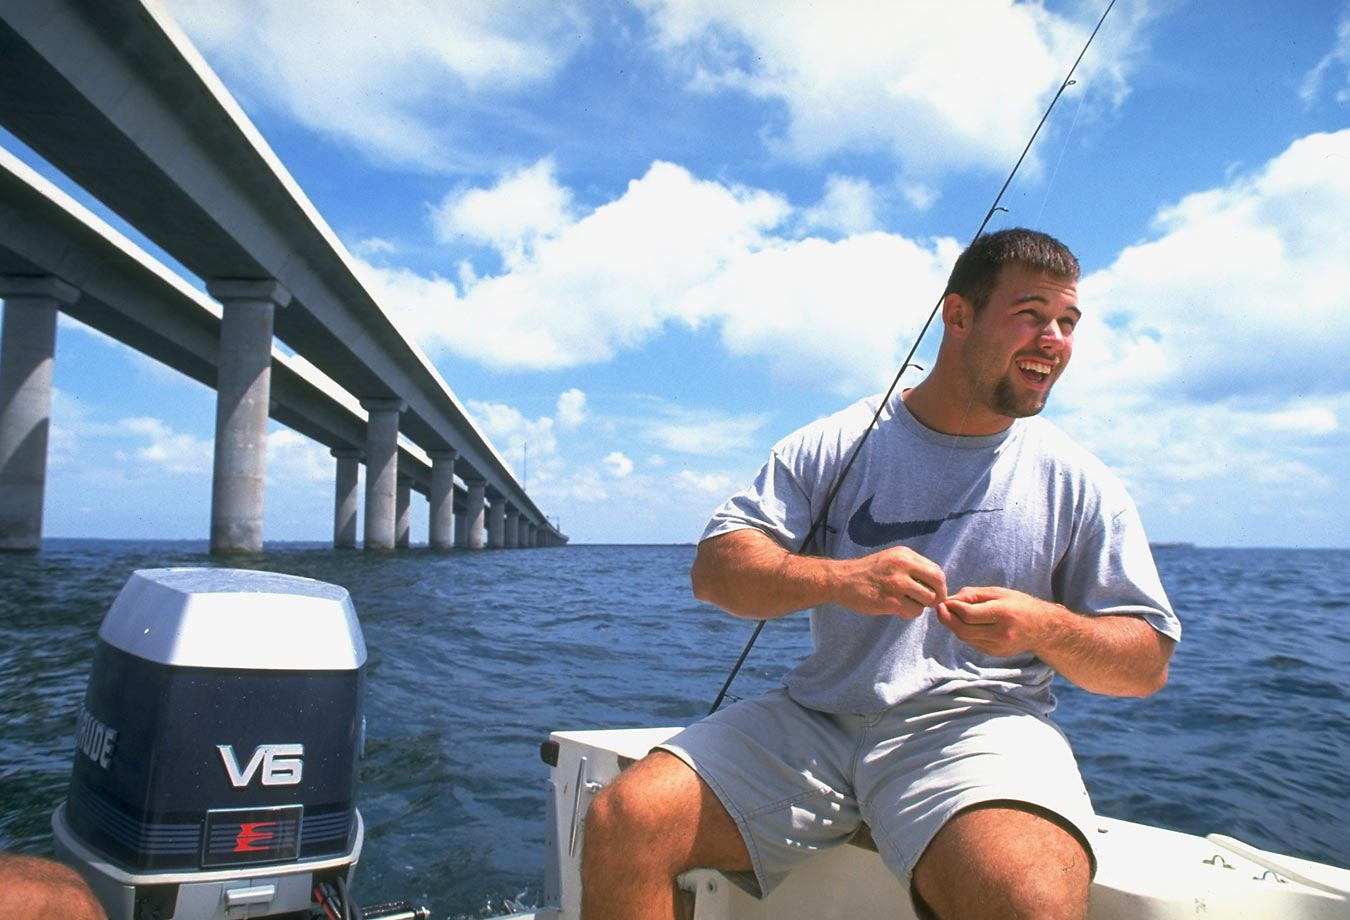 Mike Alstott of the Tampa Bay Buccaneers baiting line in 1997.